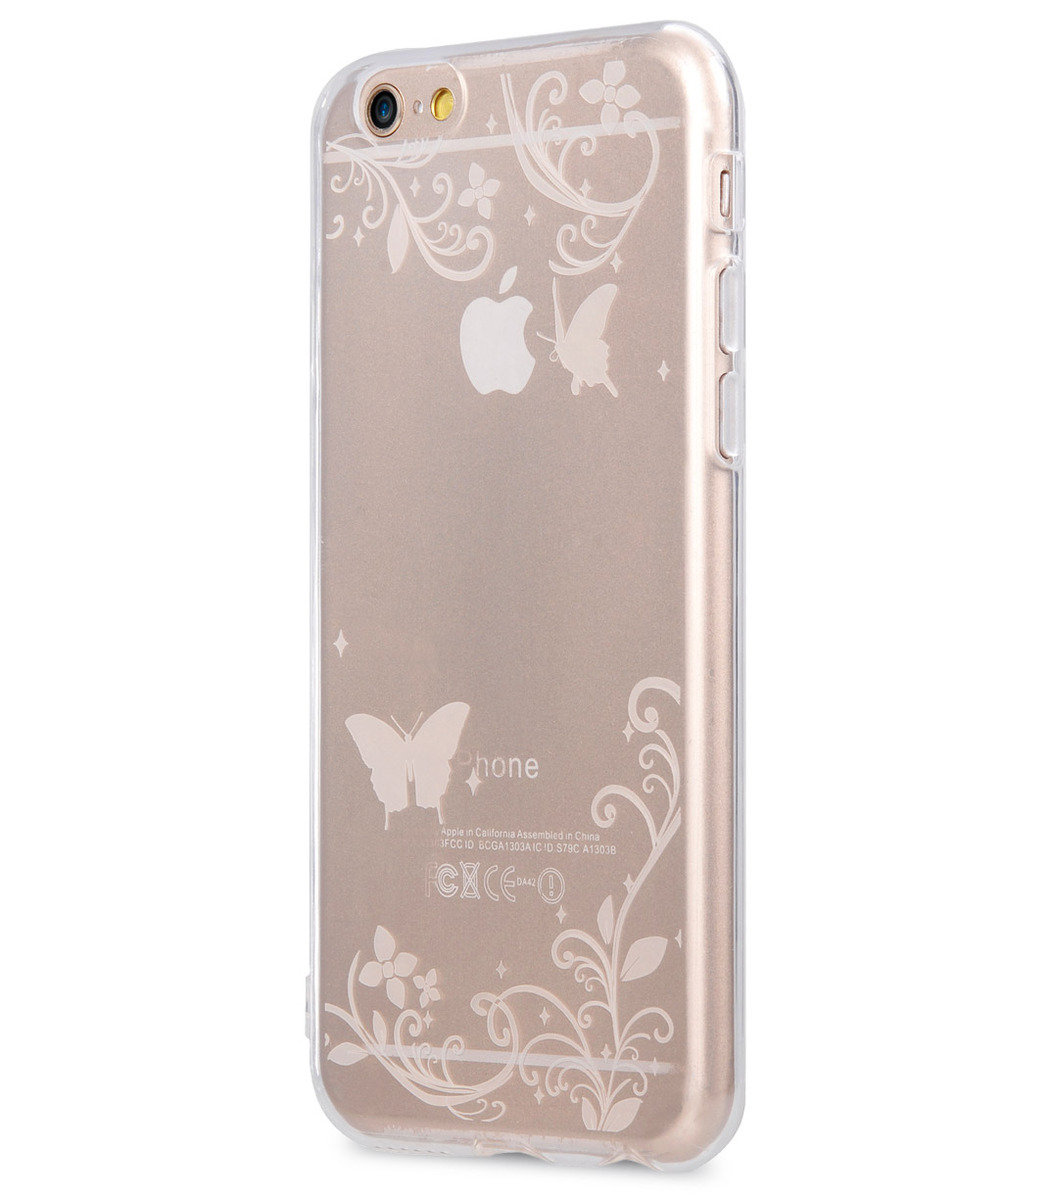 Nation TPU殼 IPhone 6S/ 6 - 4.7'' (透明蝴蝶)